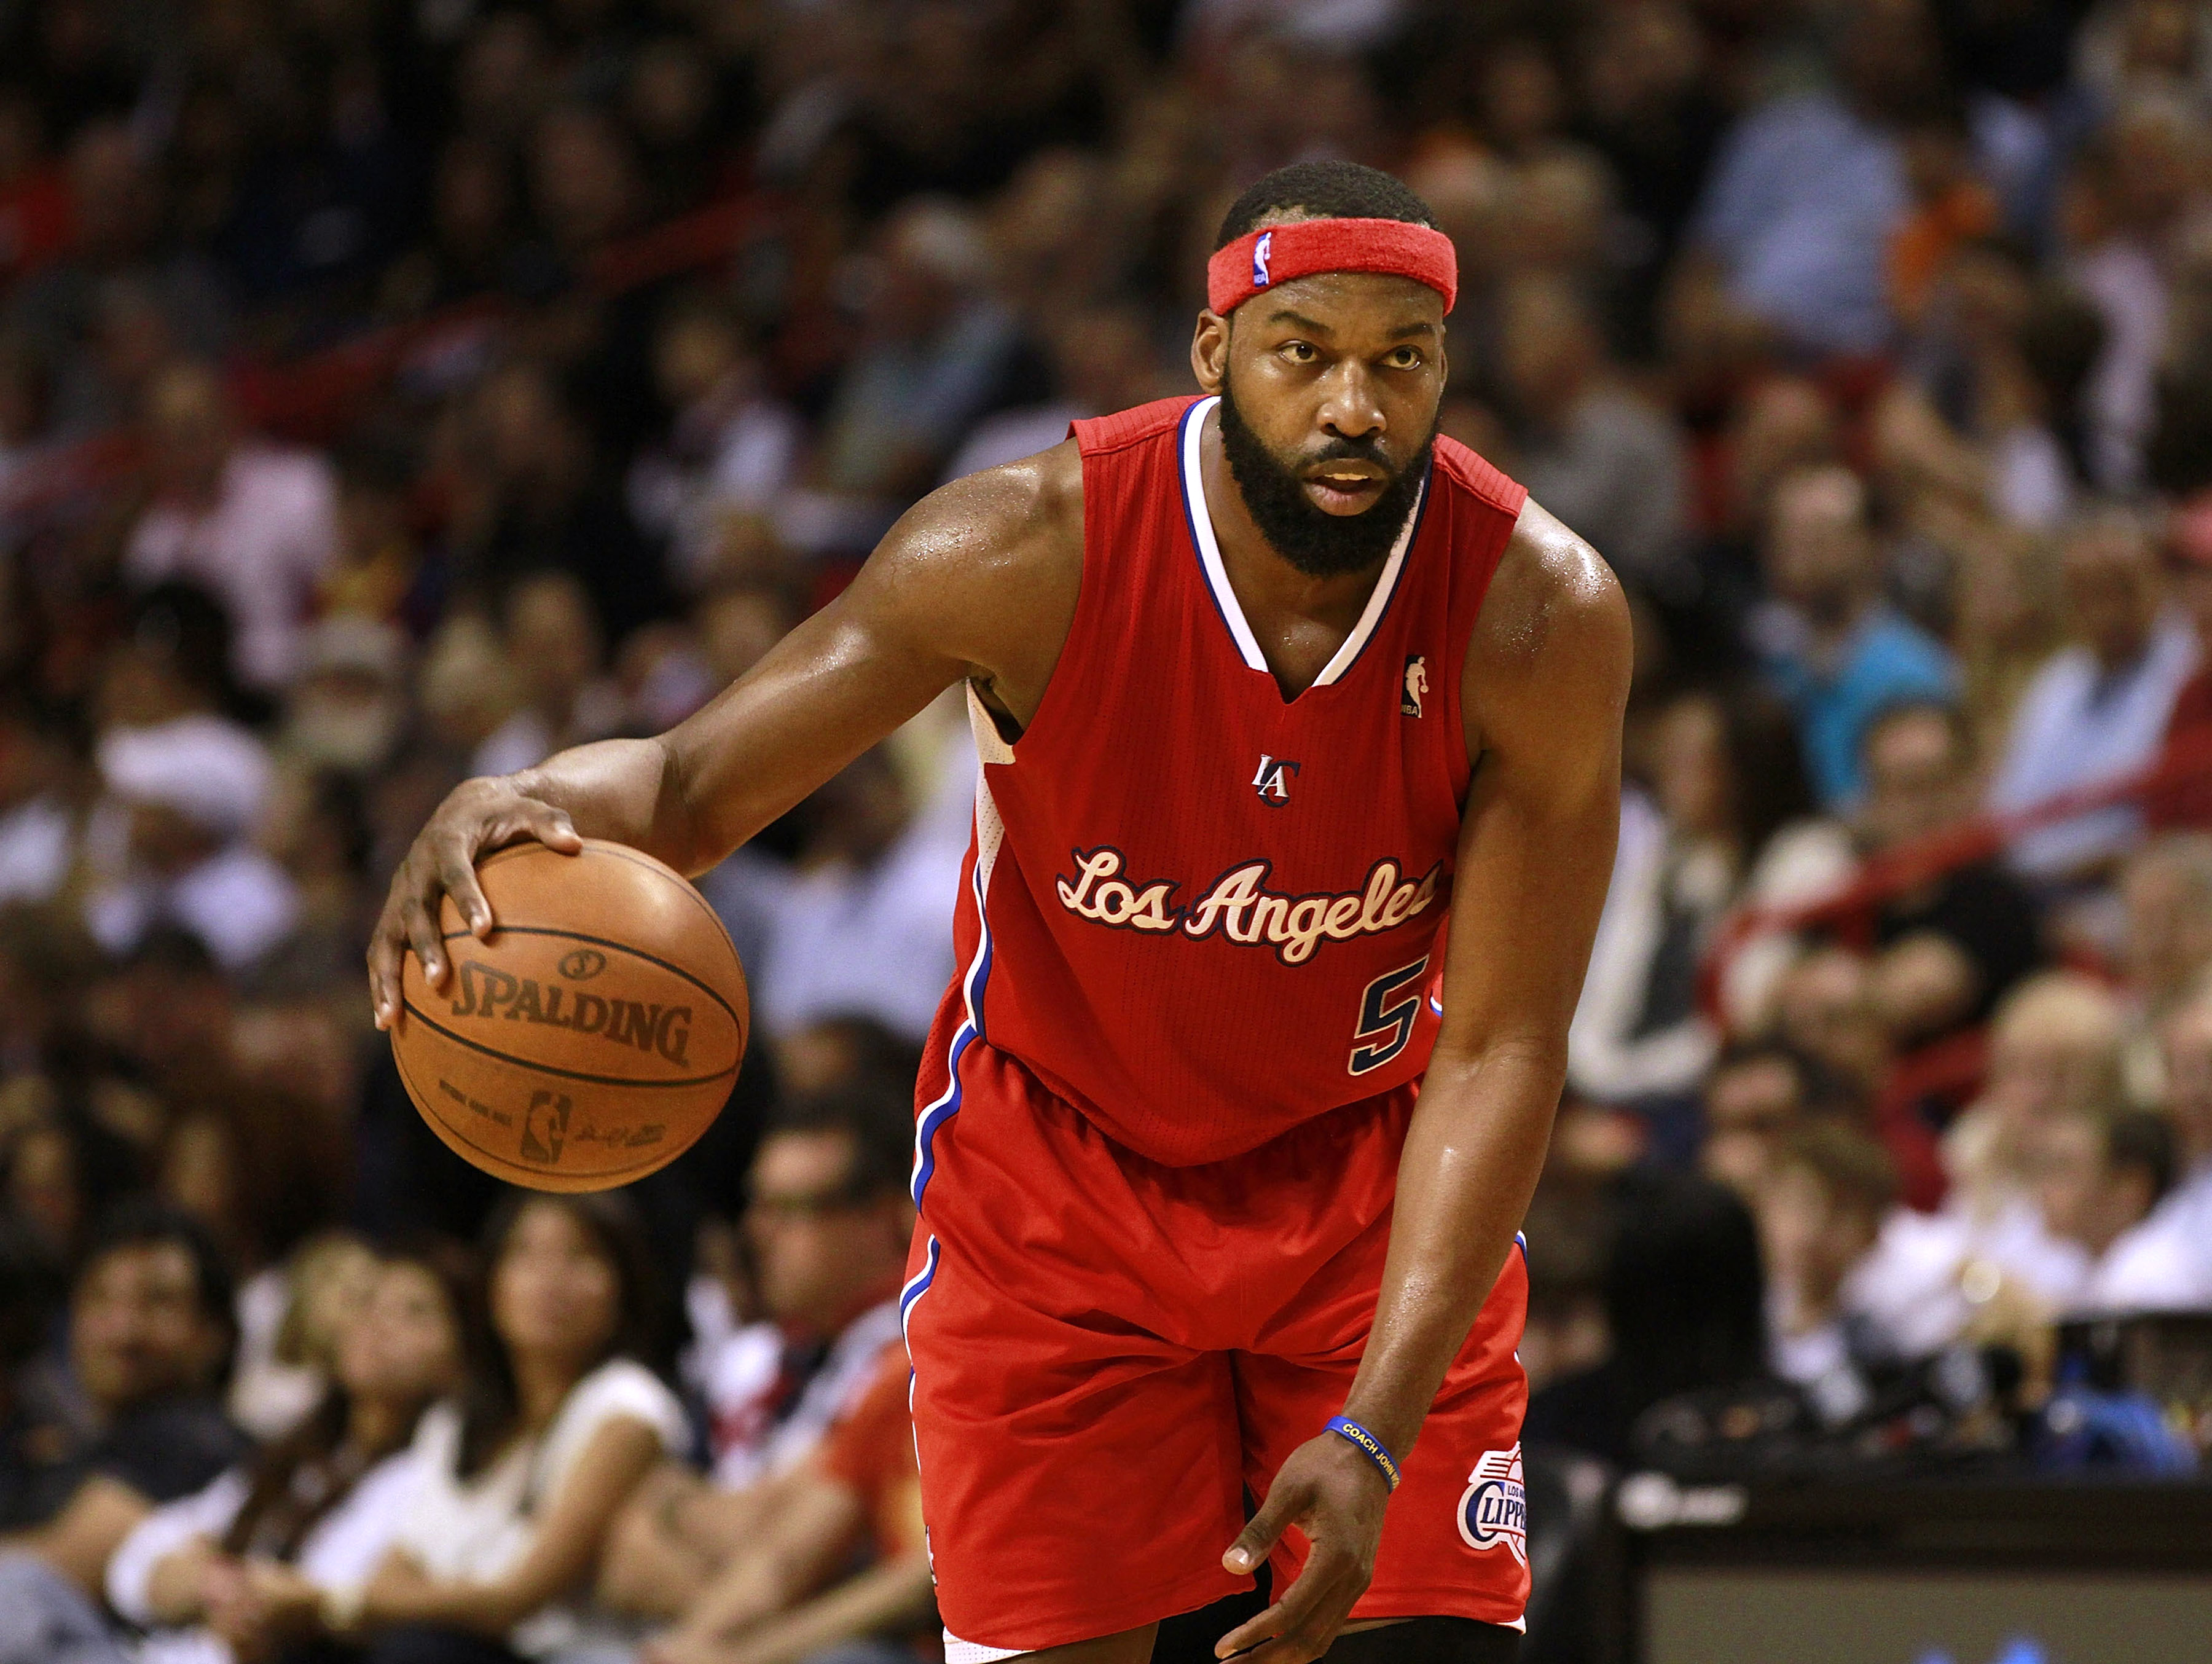 MIAMI, FL - FEBRUARY 06: Guard Baron Davis of the Los Angeles Clippers drives against the Miami Heat at American Airlines Arena on February 6, 2011 in Miami, Florida. The Heat defeated the Clippers 97-79. NOTE TO USER: User expressly acknowledges and agre